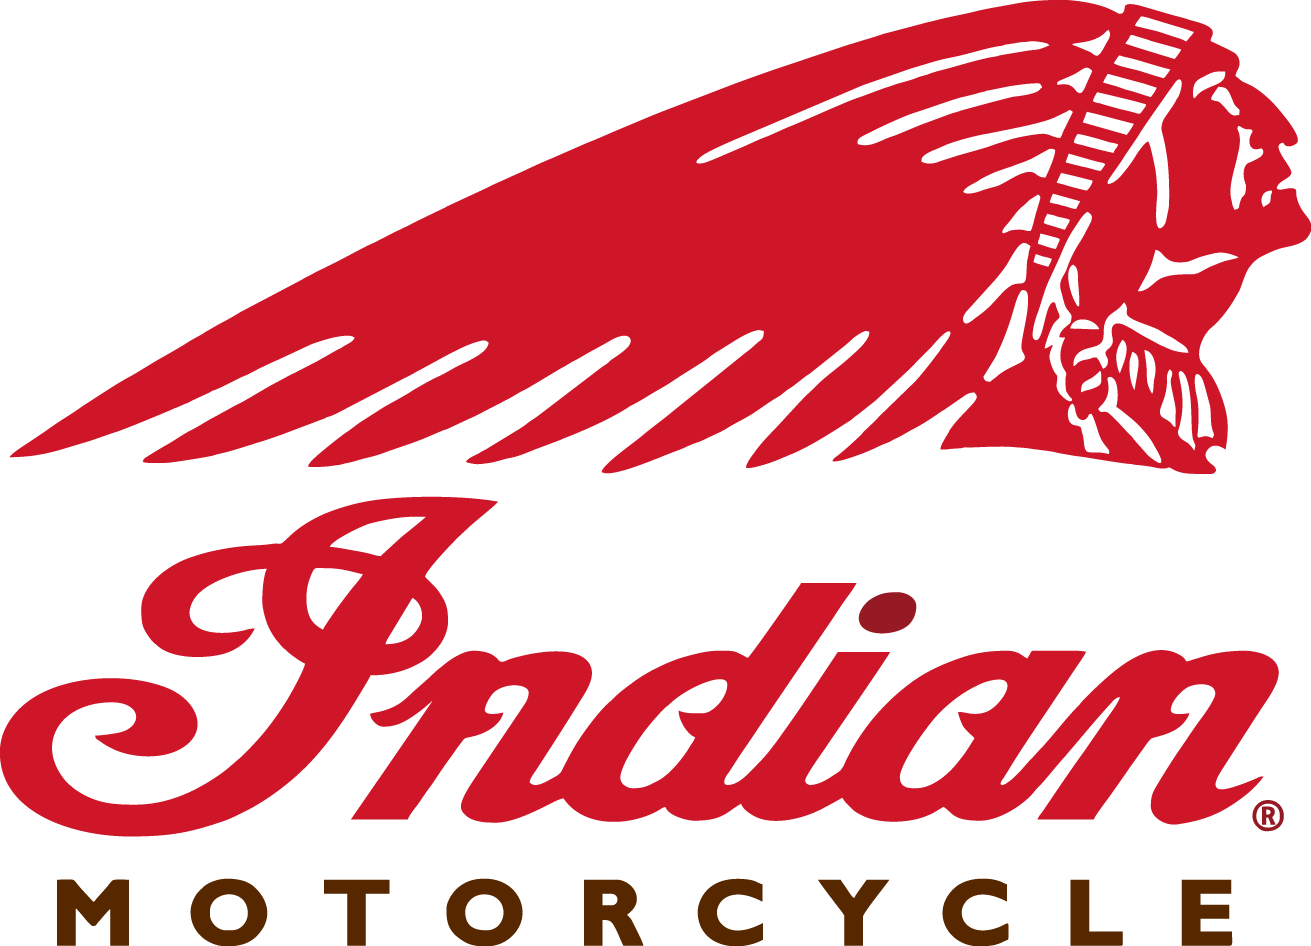 28+ Indian motorcycle logo clipart information